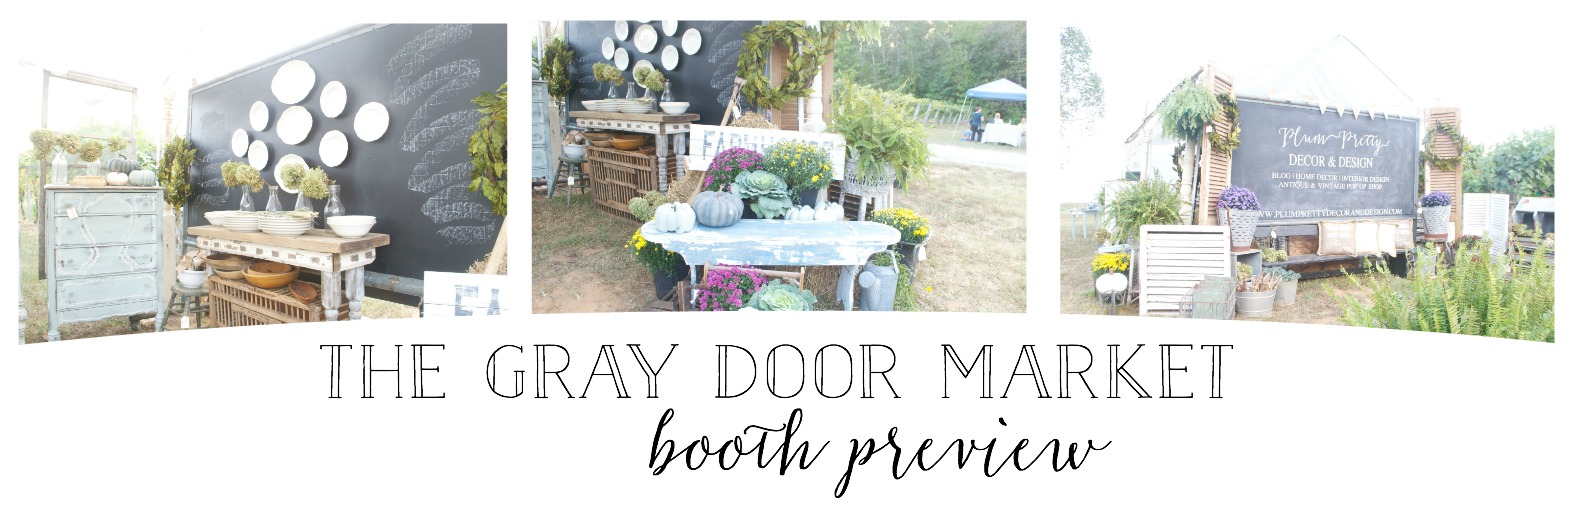 The Gray Door Market Pop Up- Plum Pretty Decor and Design Booth Preview